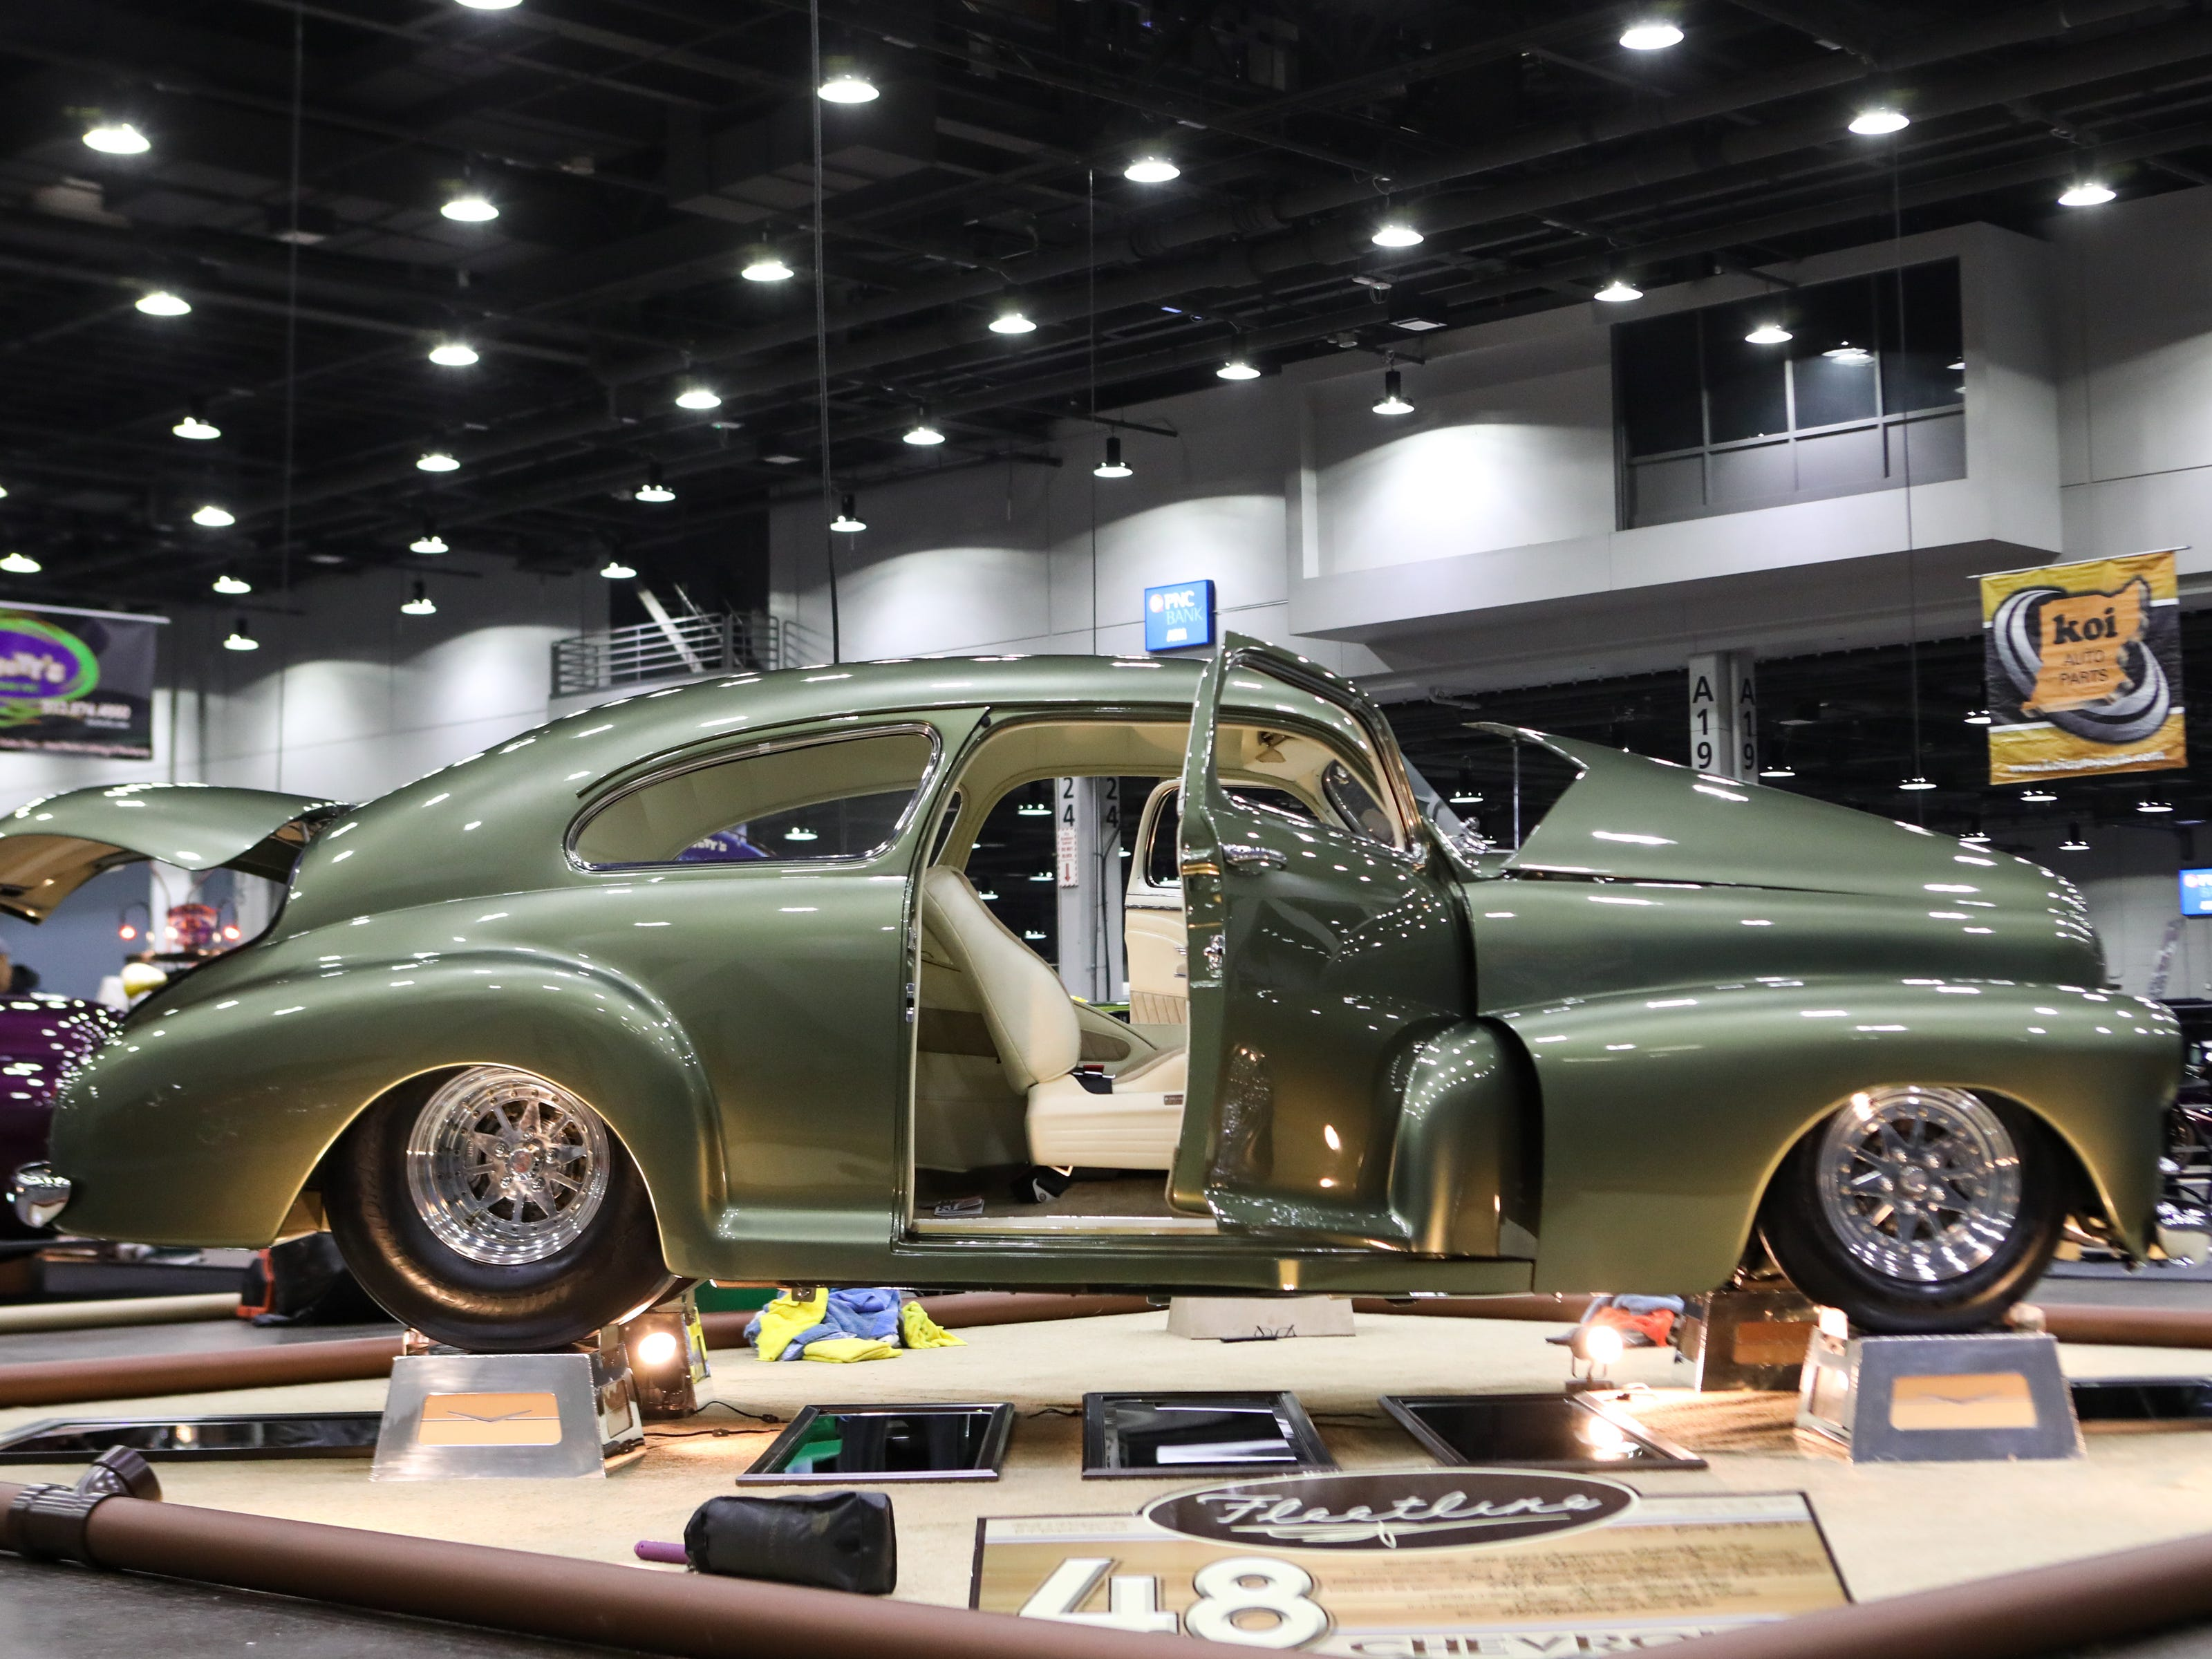 The 2019 annual KOI Cavalcade of Customs Car Show will feature hundreds of cars, trucks, motorcycles and other vehicles to view at the Duke Energy Convention Center.